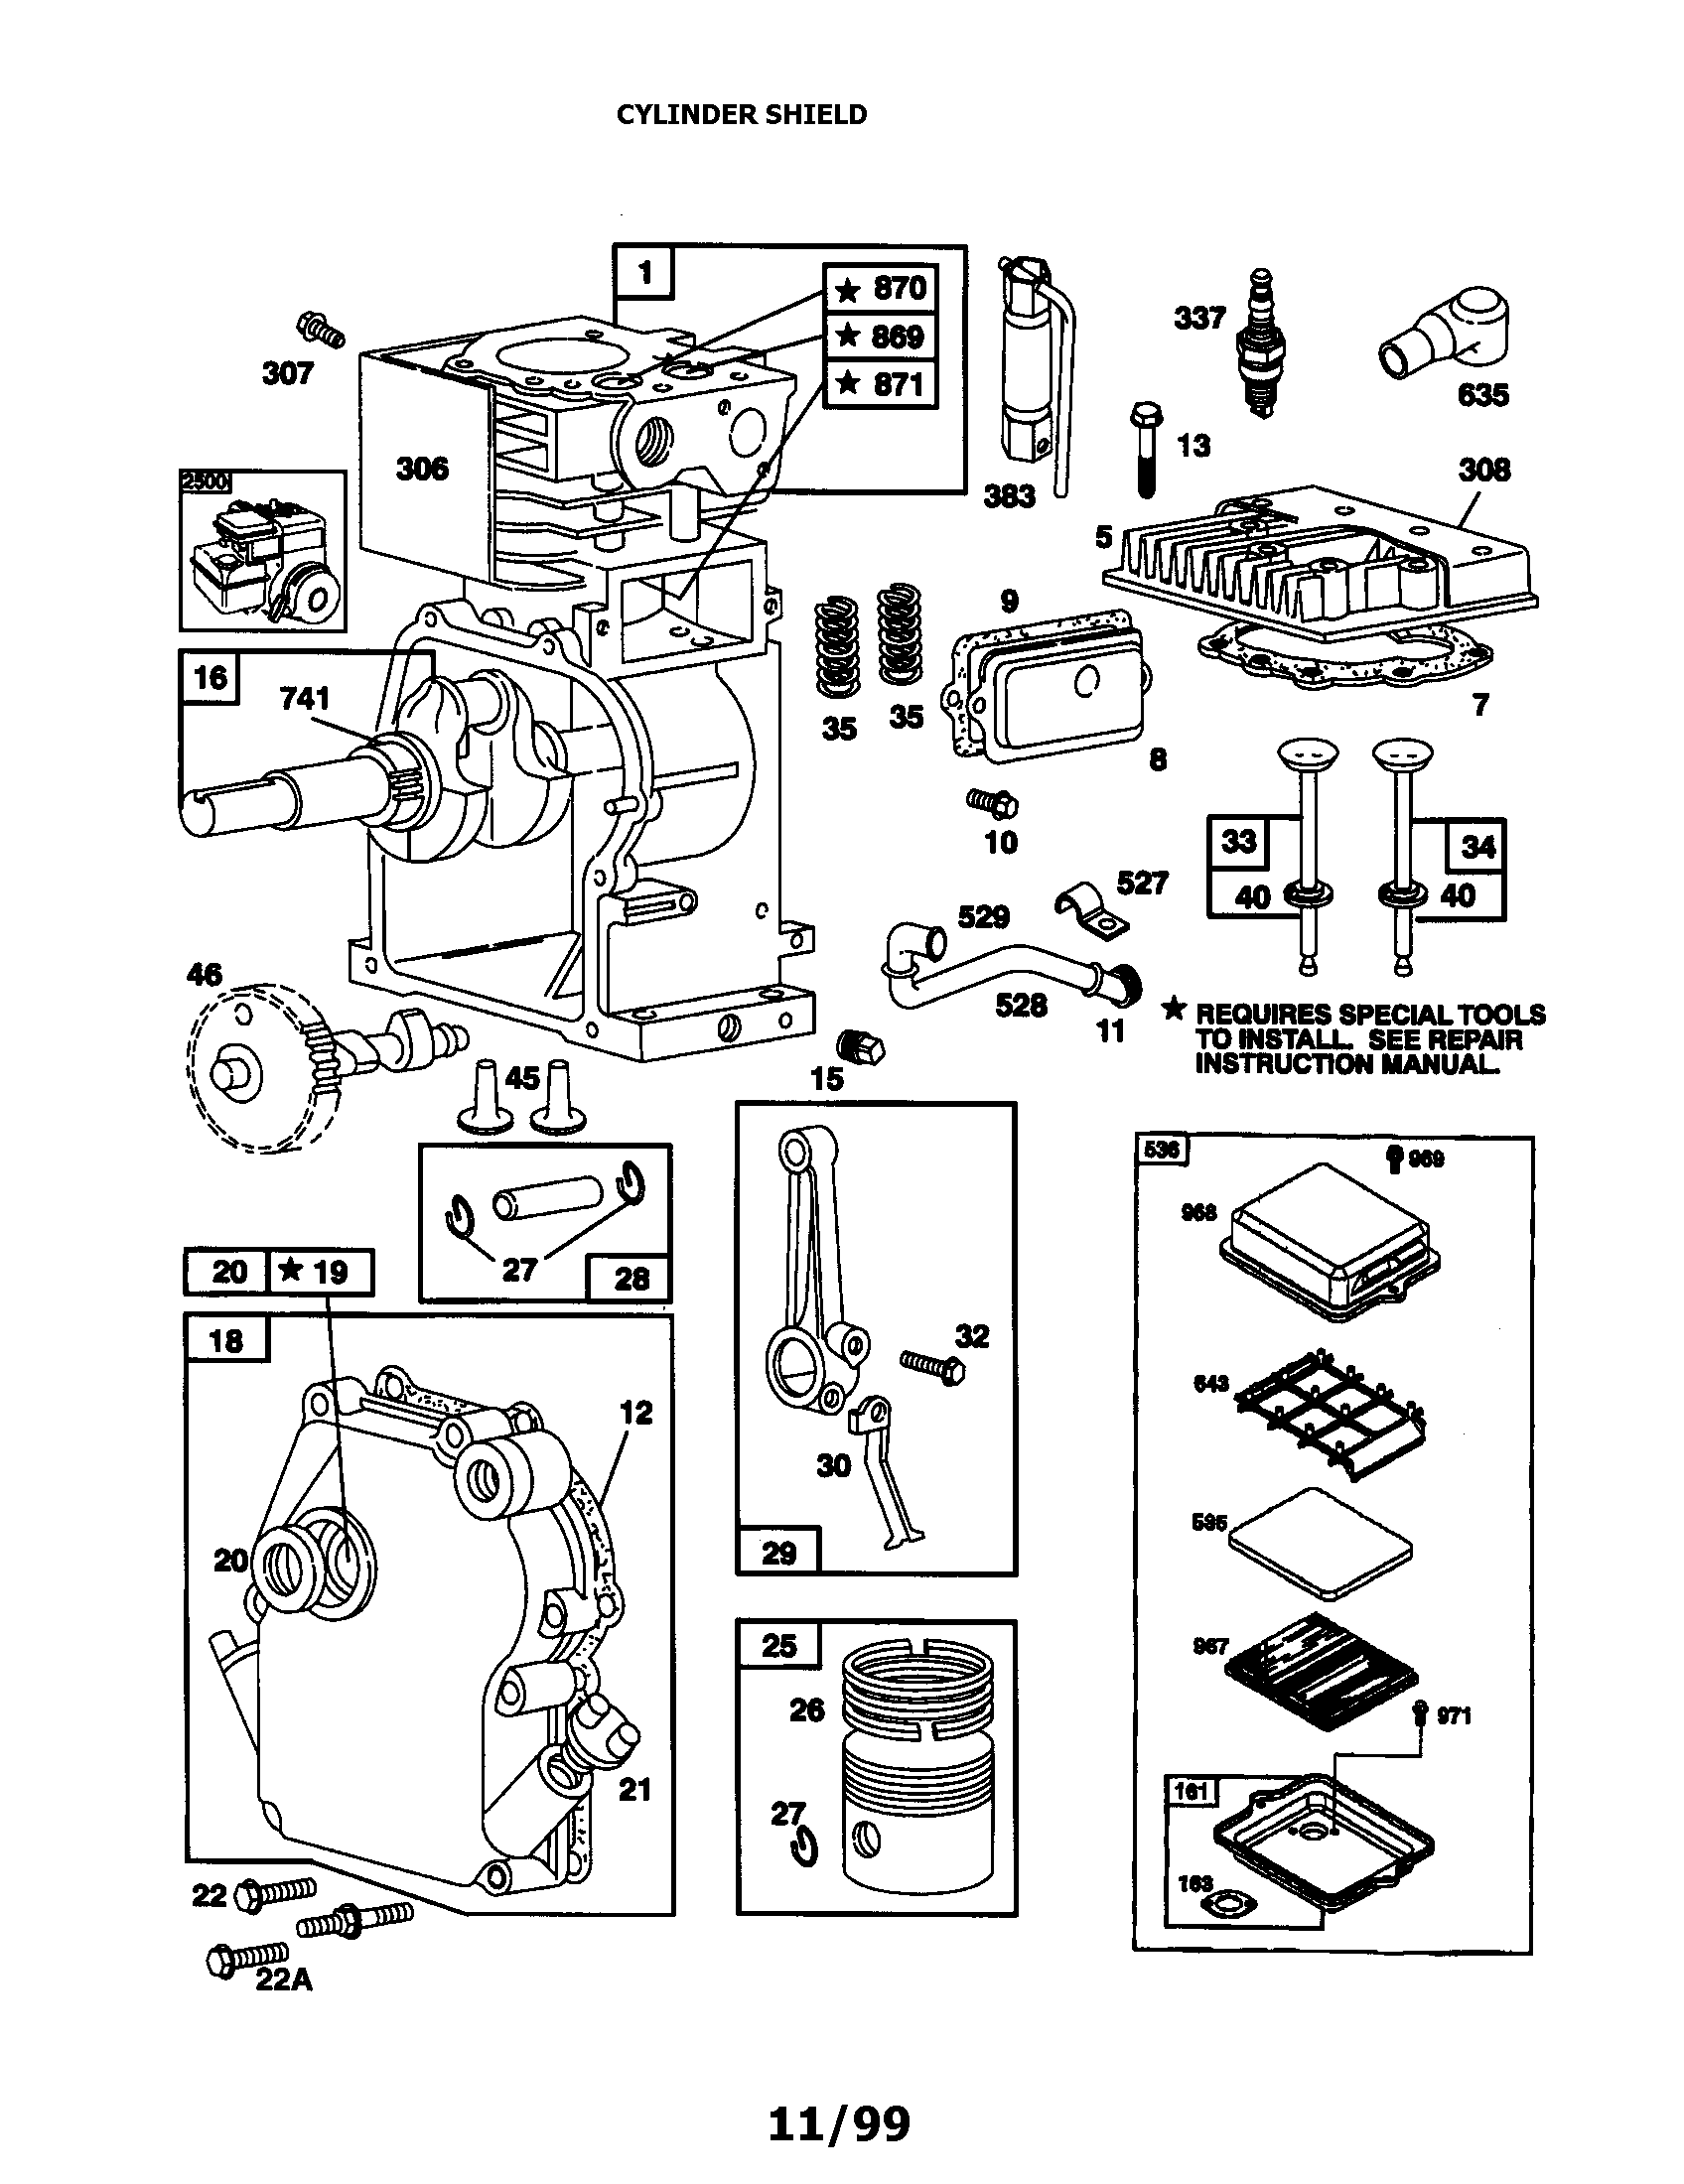 Colorful Honda Trx420fm Wiring Diagram Inspiration Everything You